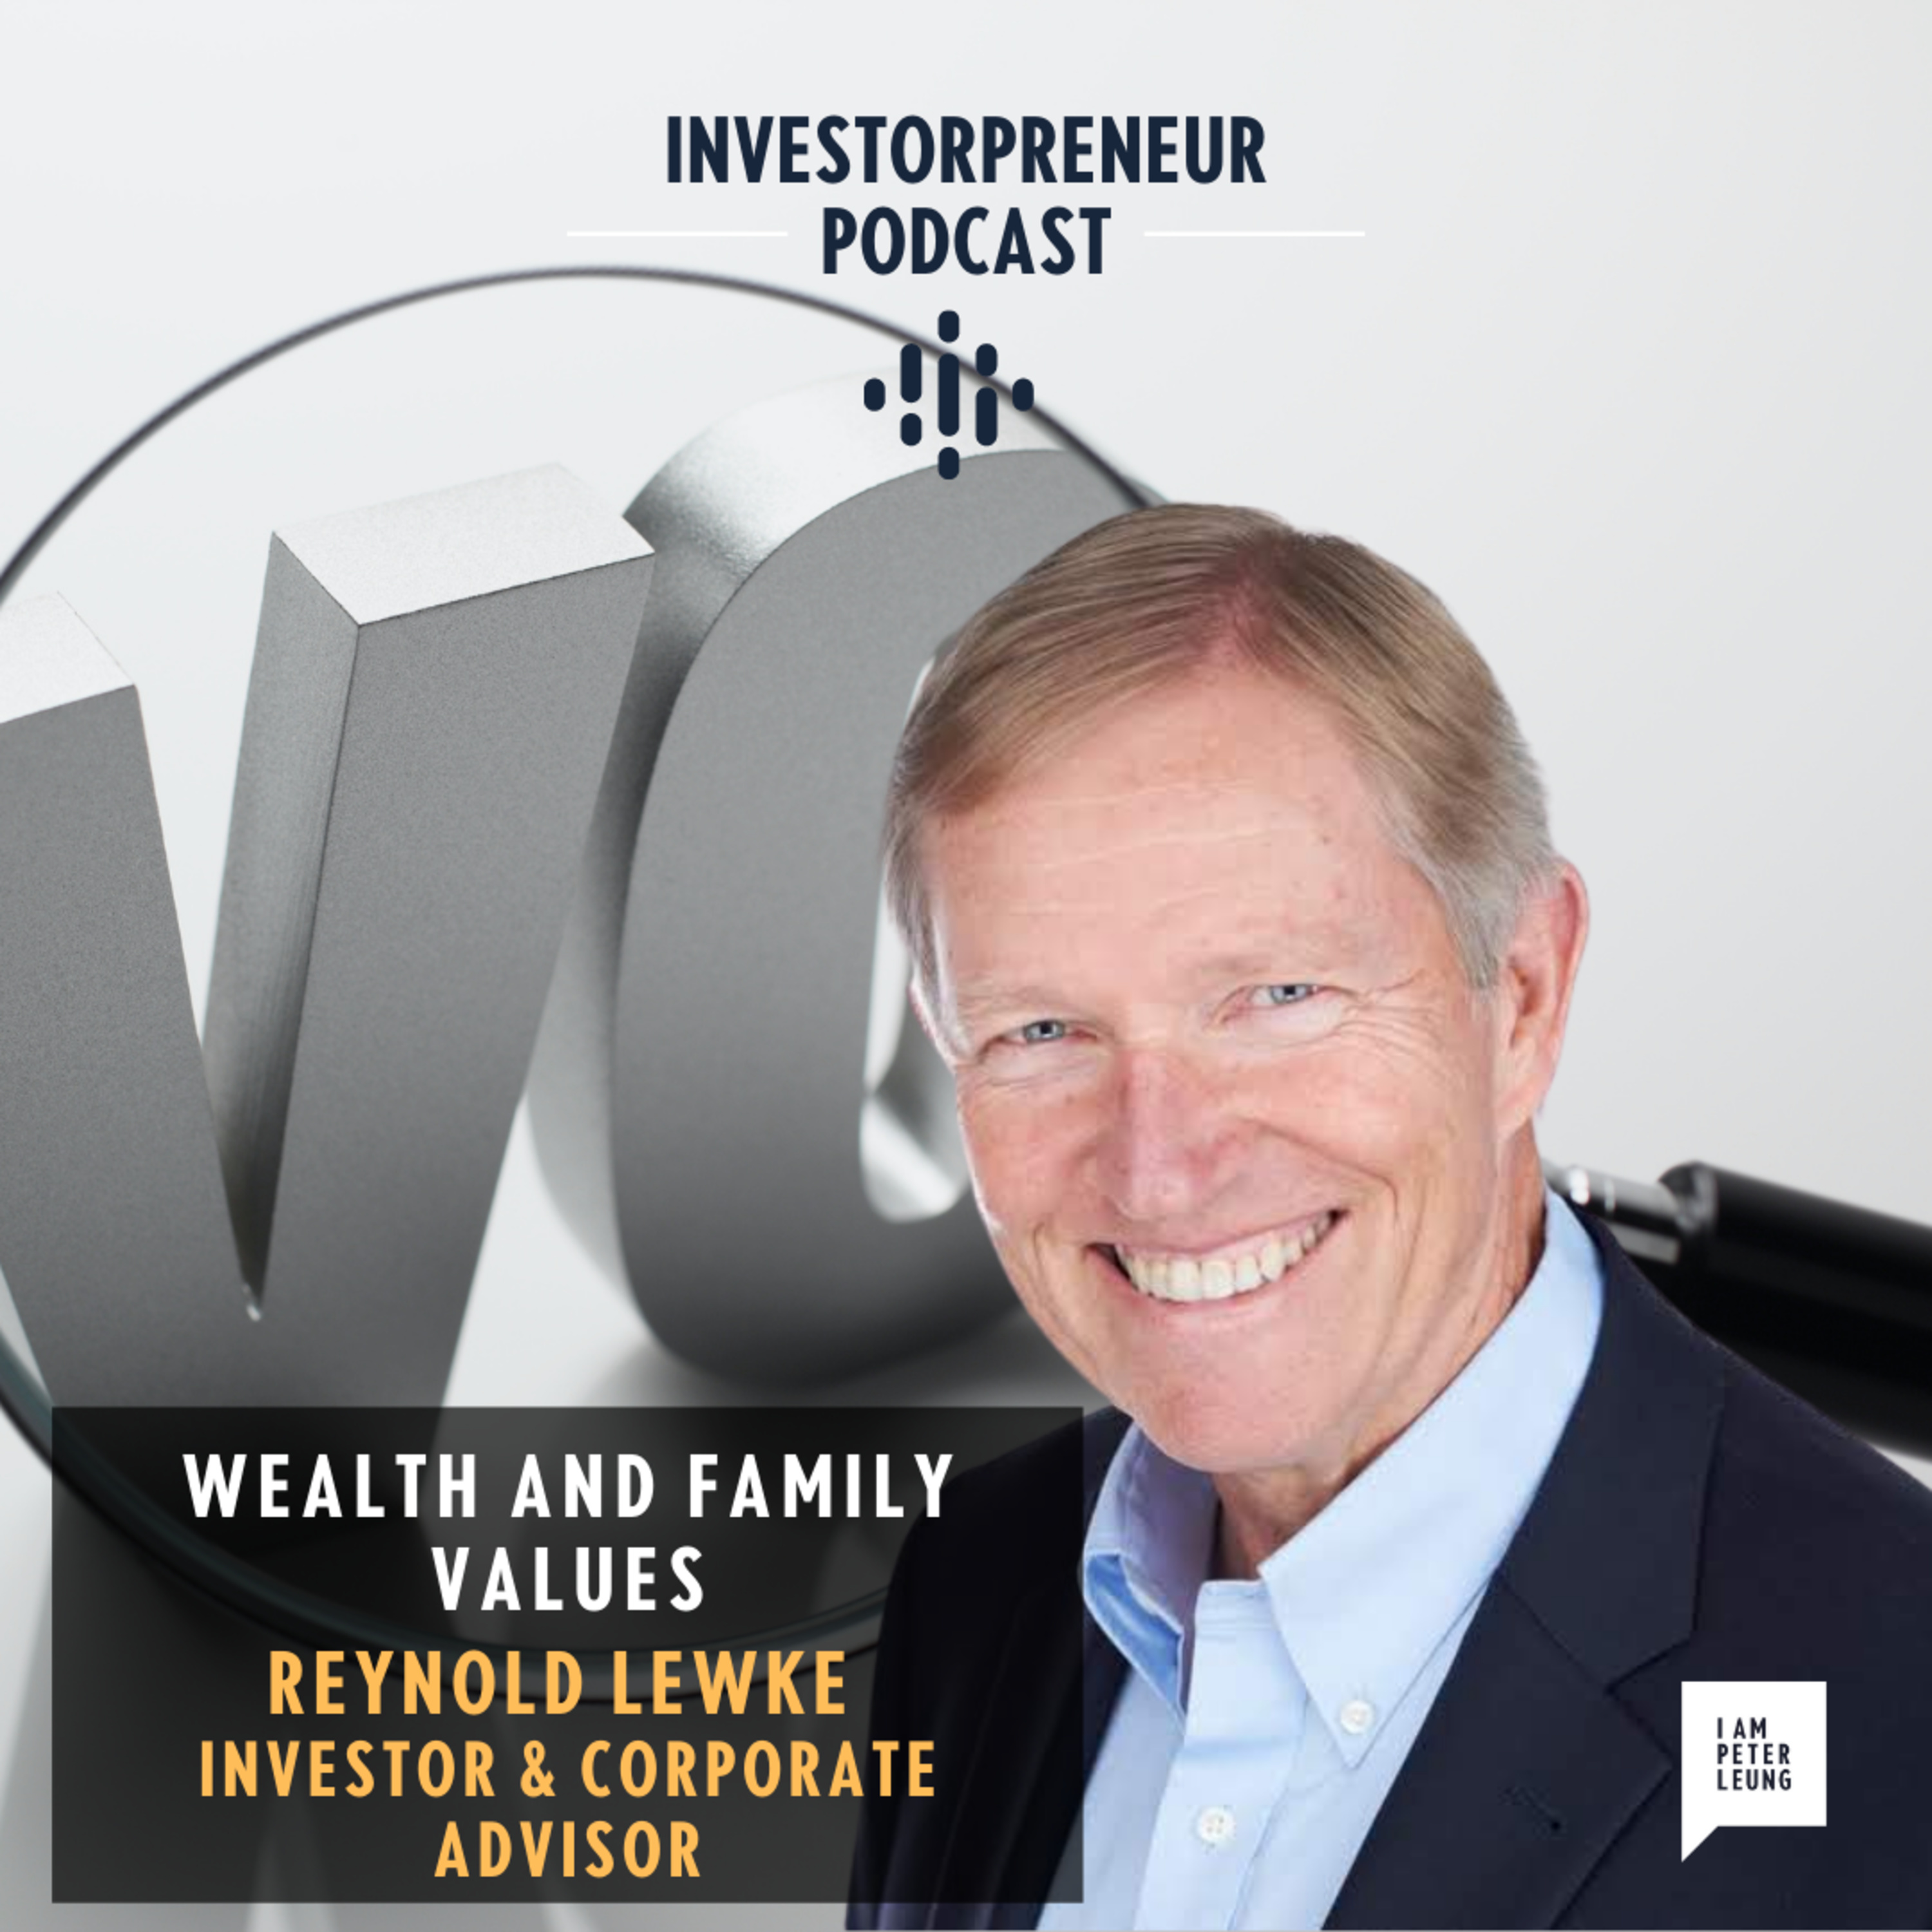 Wealth and Family Values with Reynold Lewke